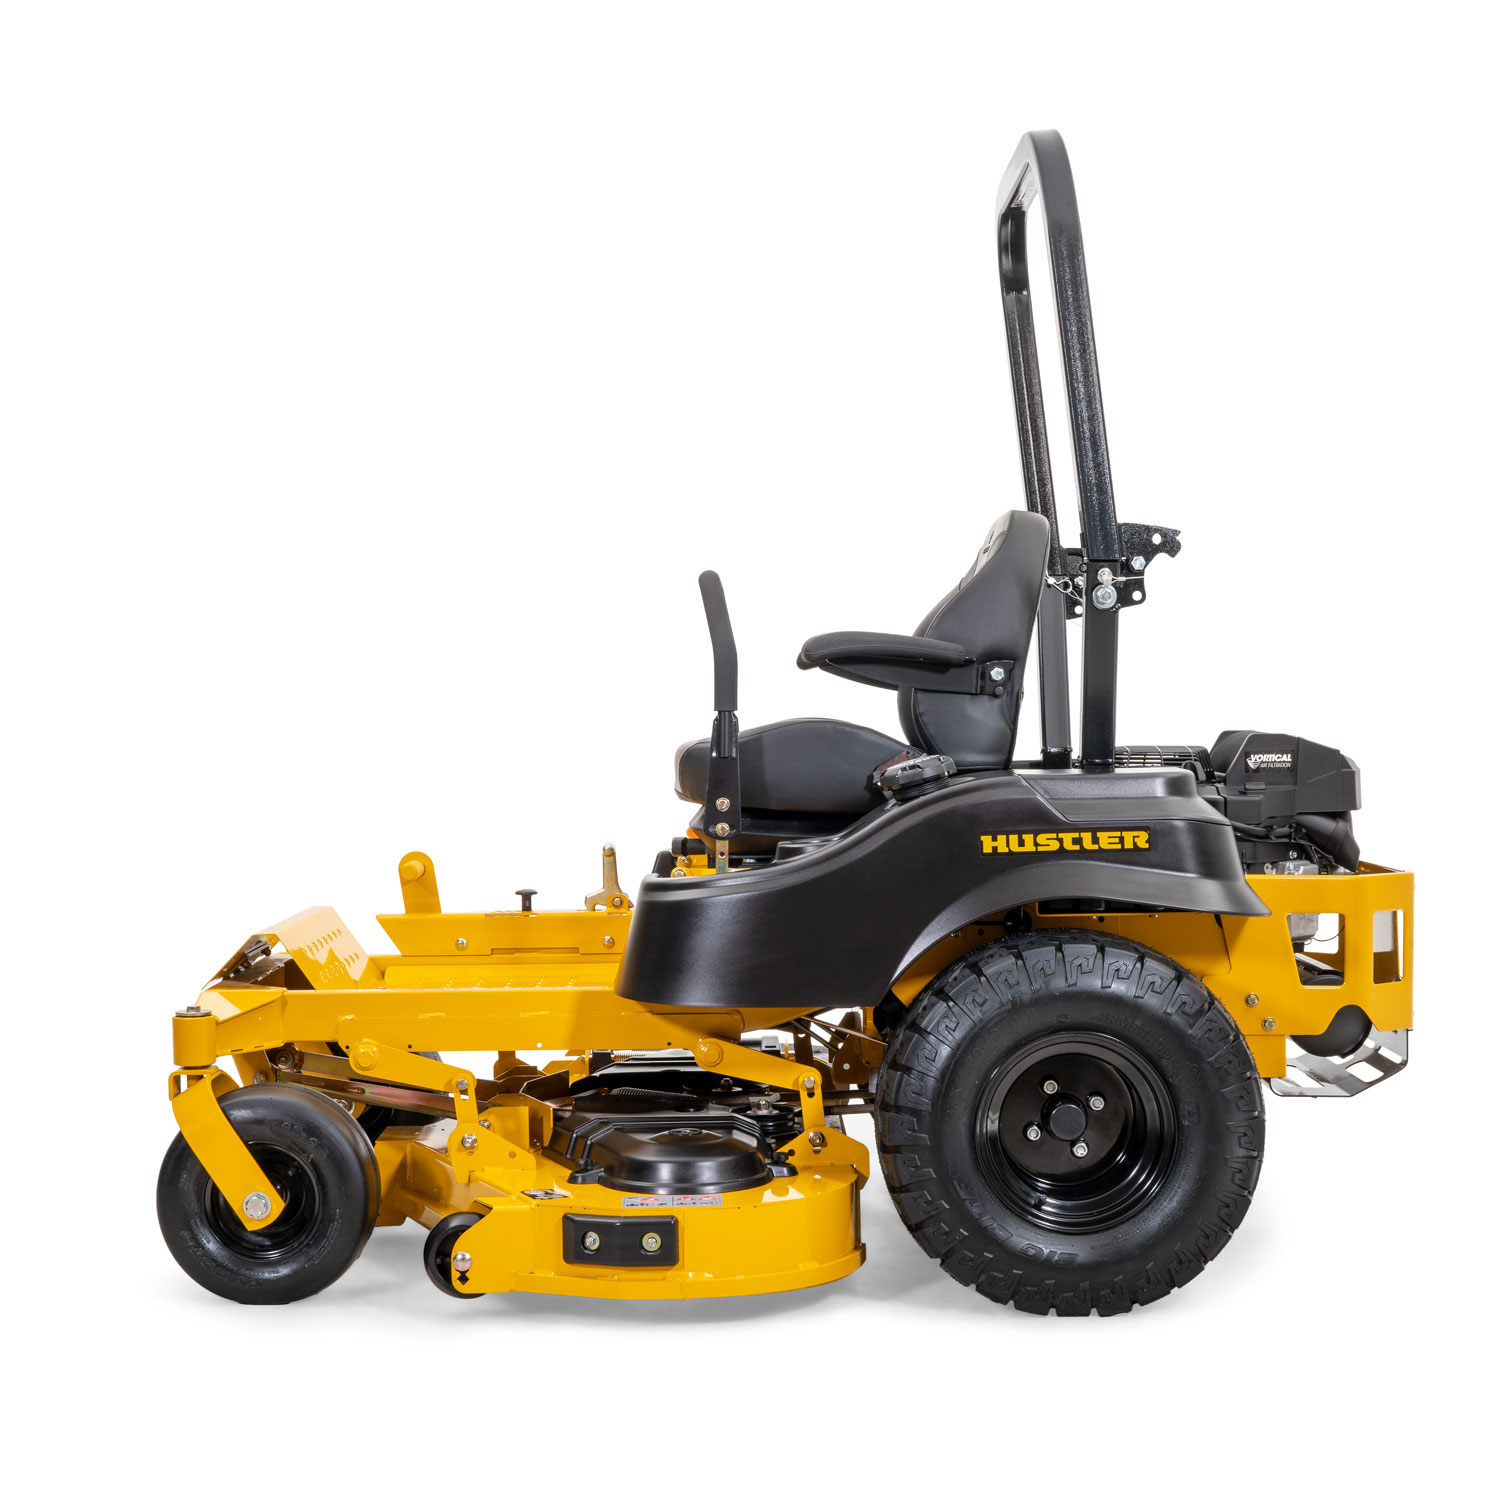 Image of profile of a yellow riding mower